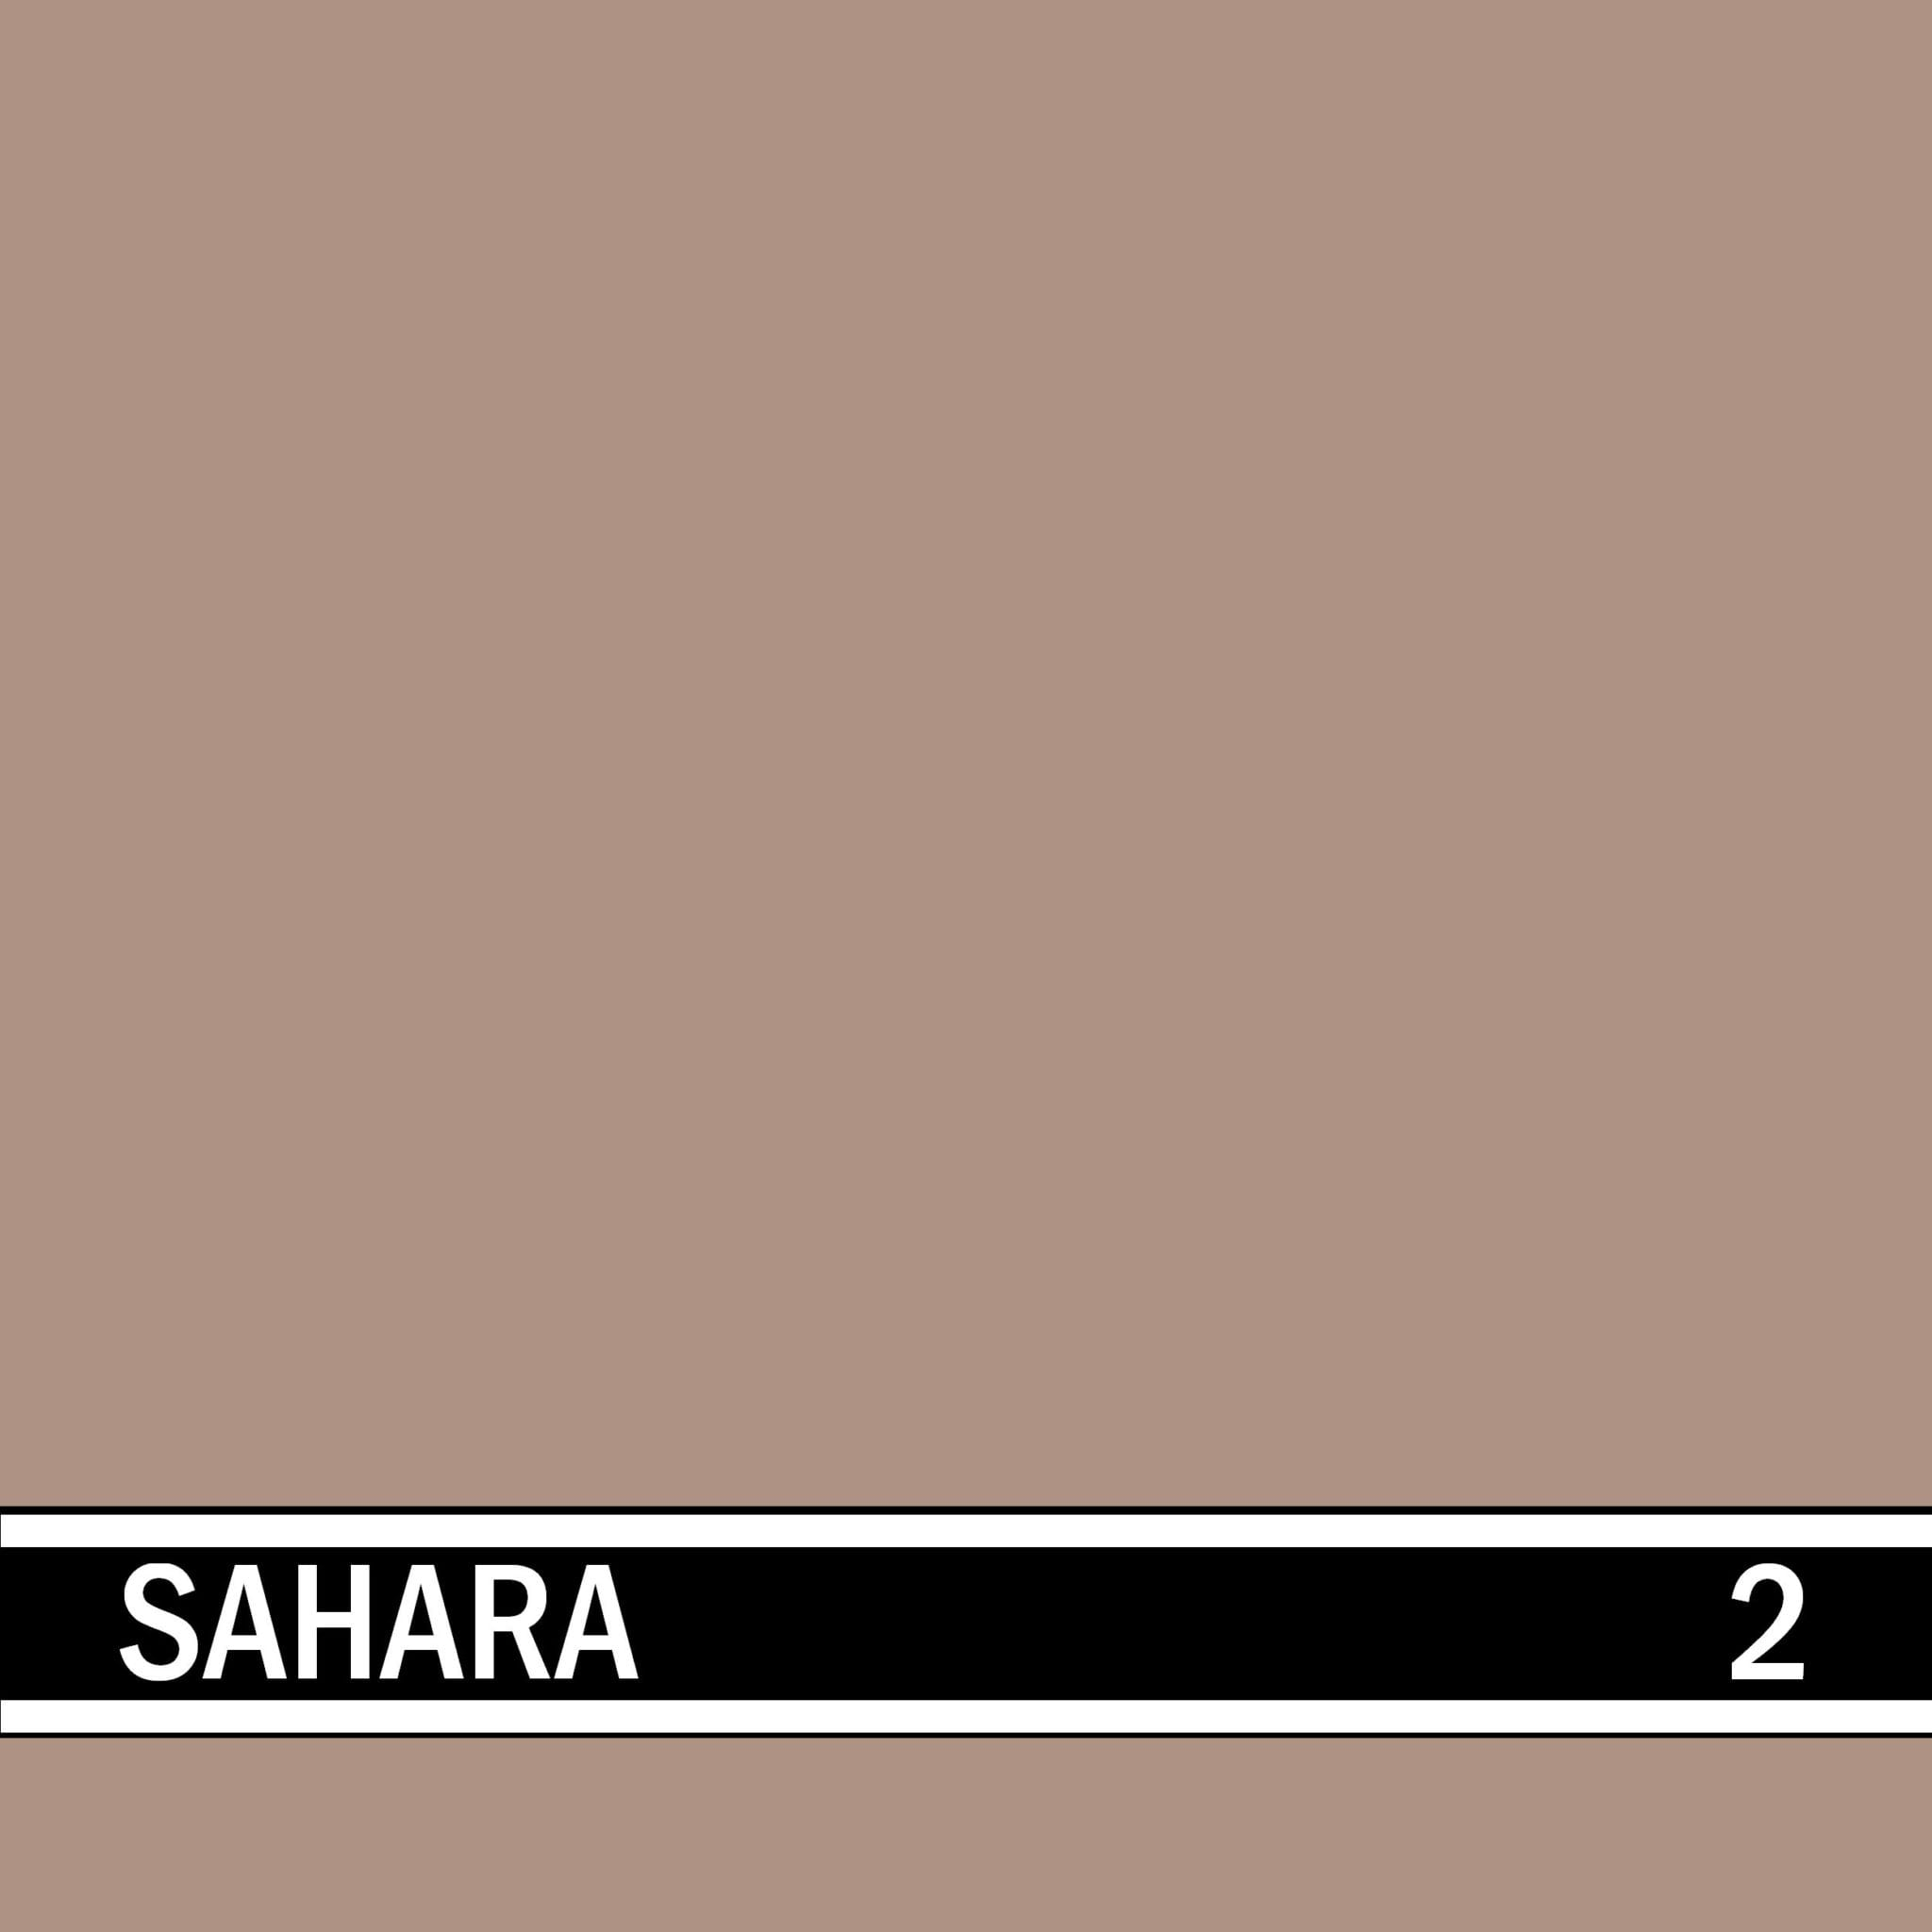 Sahara integral concrete color for stamped concrete and decorative colored concrete